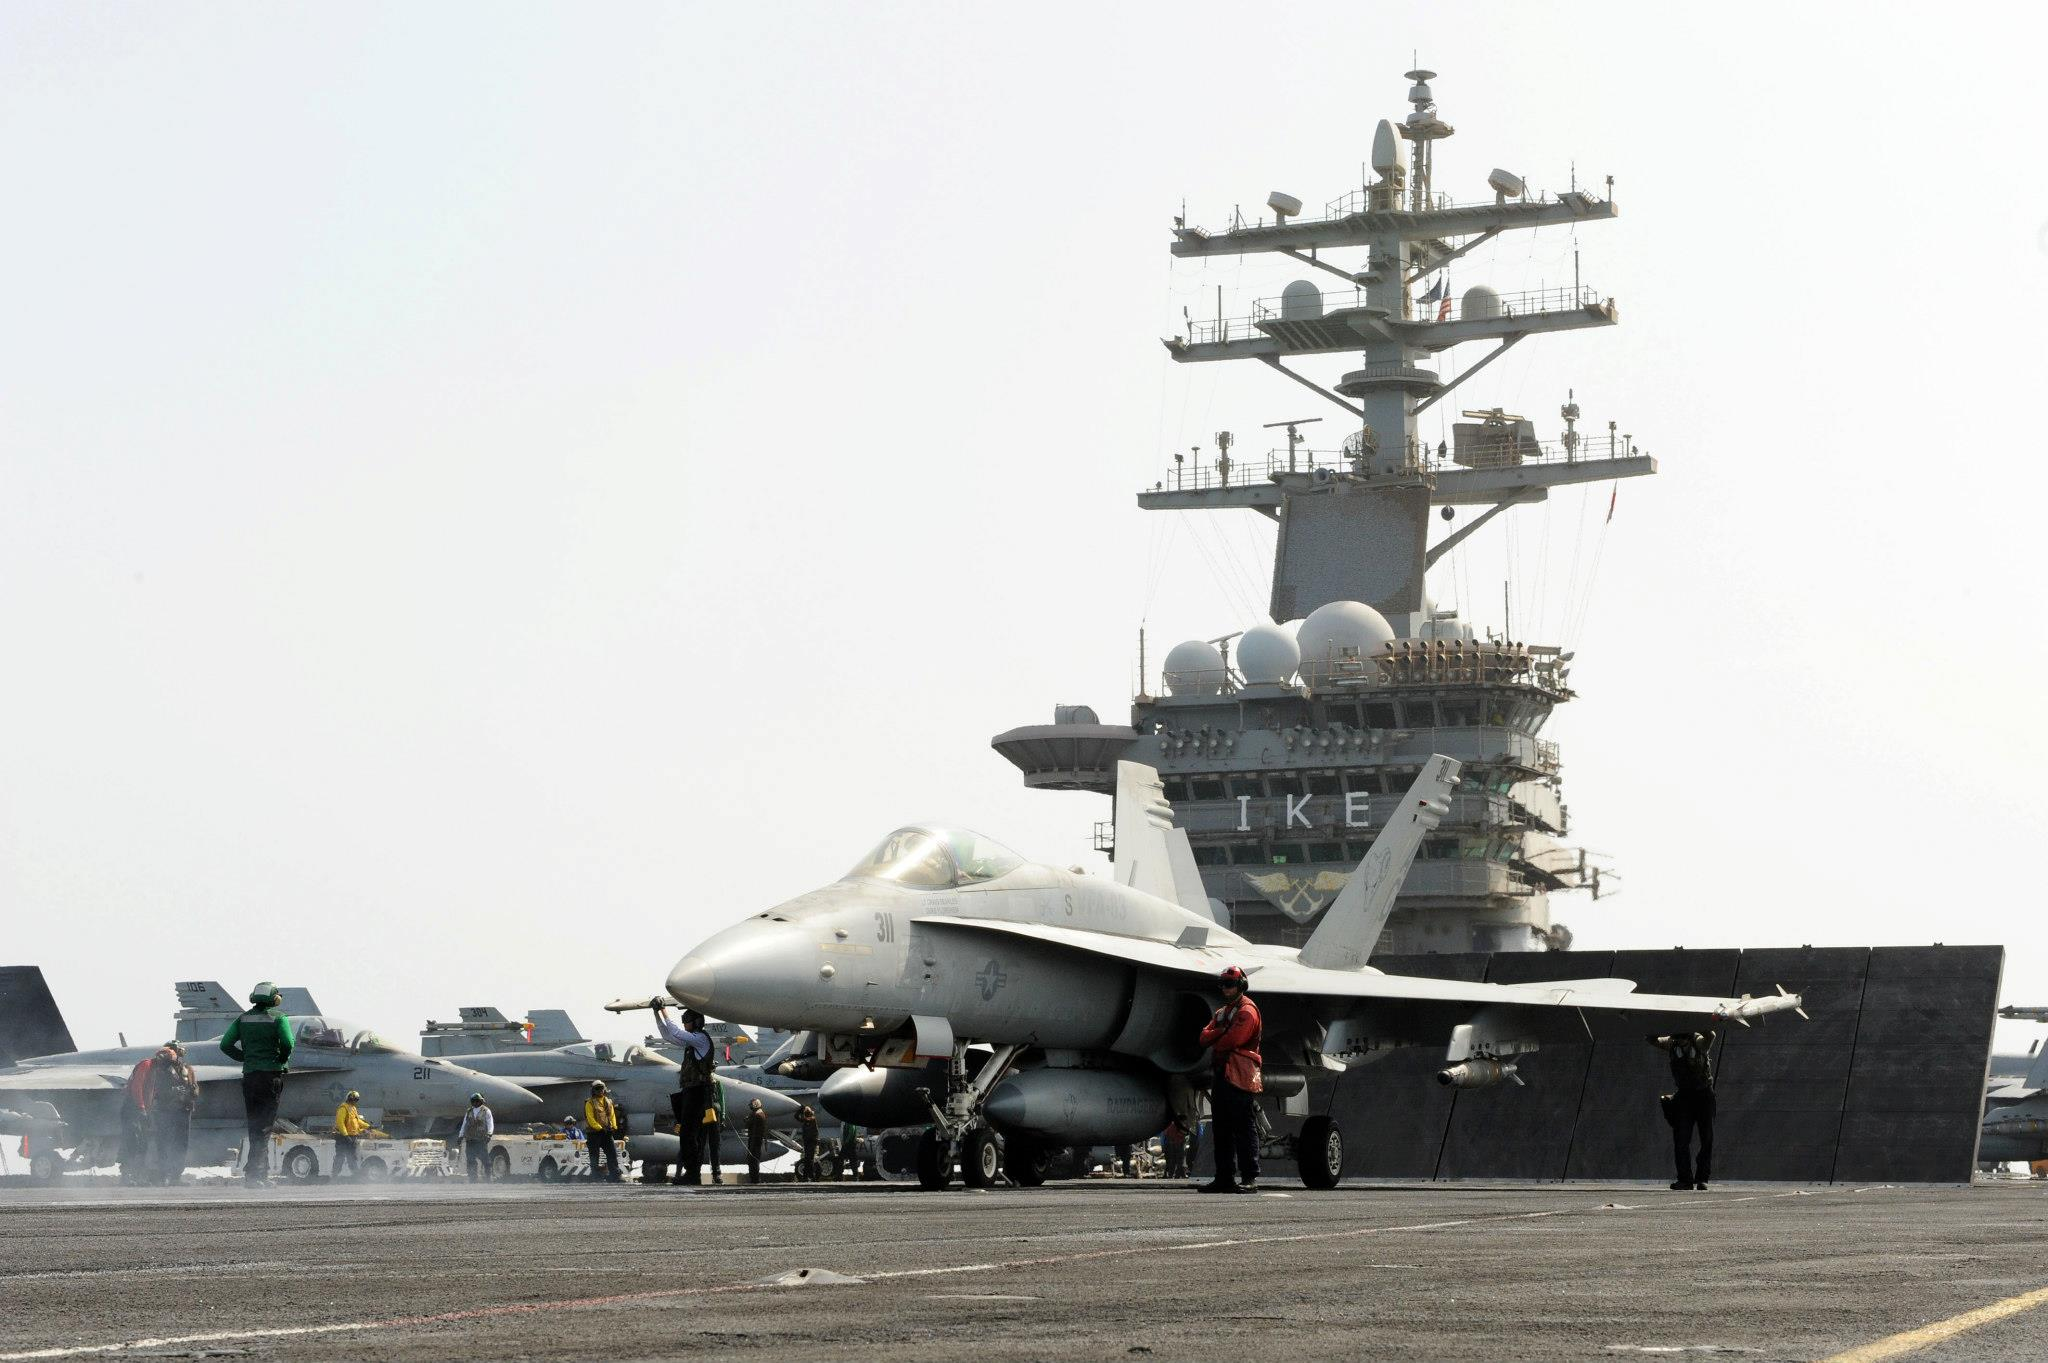 Guns and Military ARABIAN SEA (Aug. 20, 2012) An F/A-18C Hornet assigned to the Rampagers of Strike Fighter Squadron (VFA) 83 prepares to launch during a launch cycle aboard the Nimitz-class aircraft carrier USS Dwight D. Eisenhower (CVN 69).